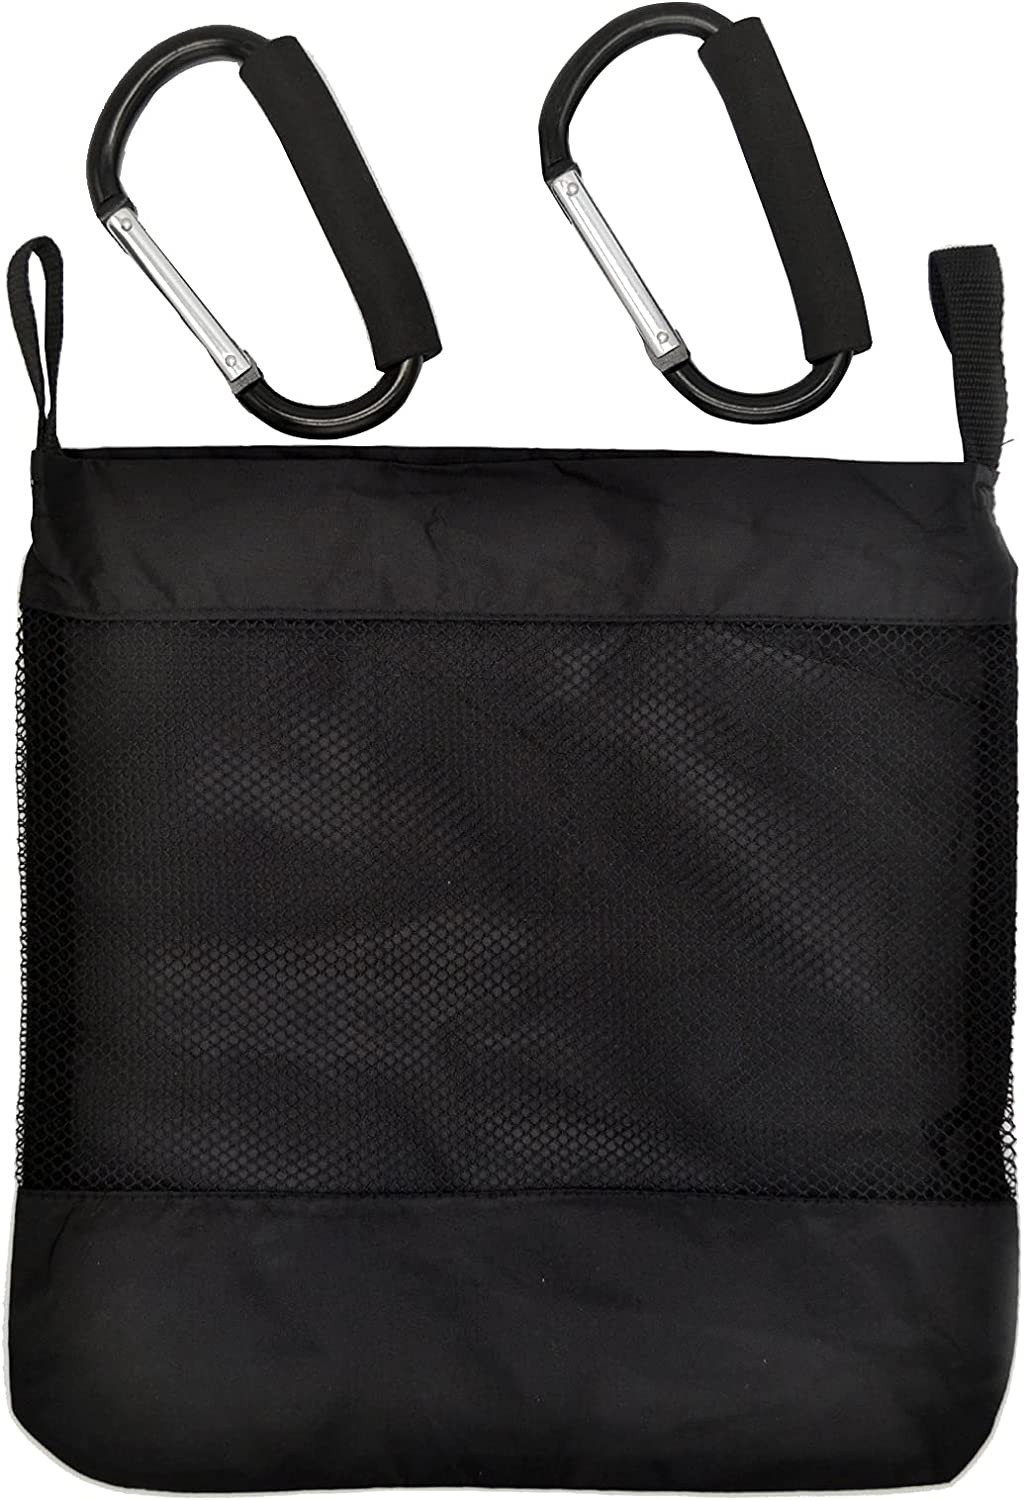 Universal Baby Stroller Organizer with Two Stroller Hooks, Extra Large Storage Space Polyester Net Mesh Storage Bag Non-Slip and Adjustable Stroller Accessories for Carrying Diaper Toys and Snacks (Black)